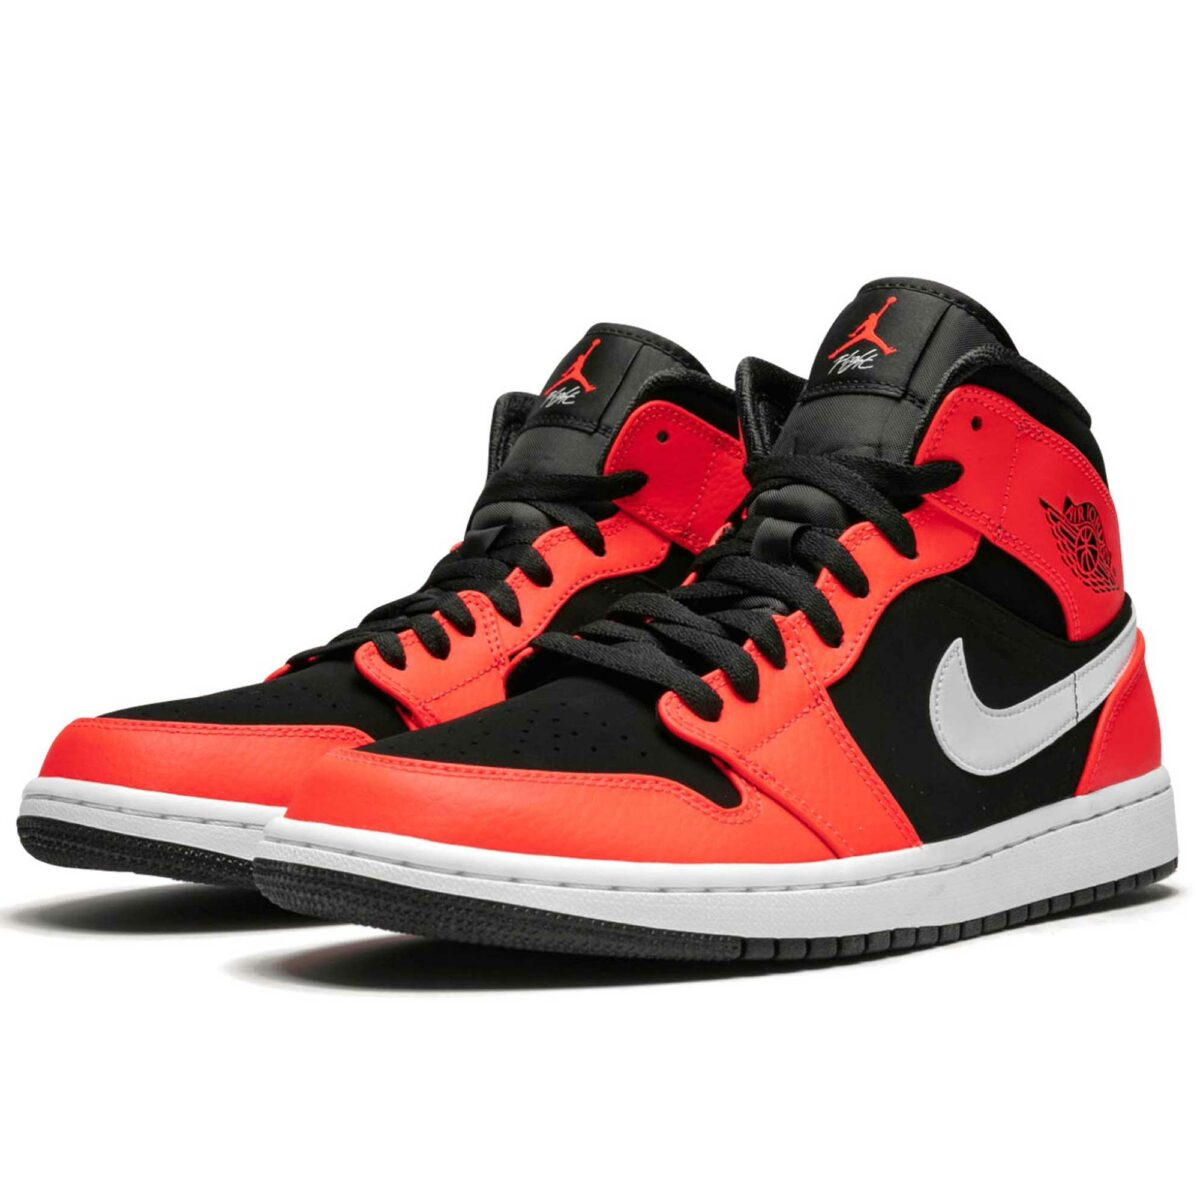 nike air Jordan 1 mid infrared 23 554724_061 купить